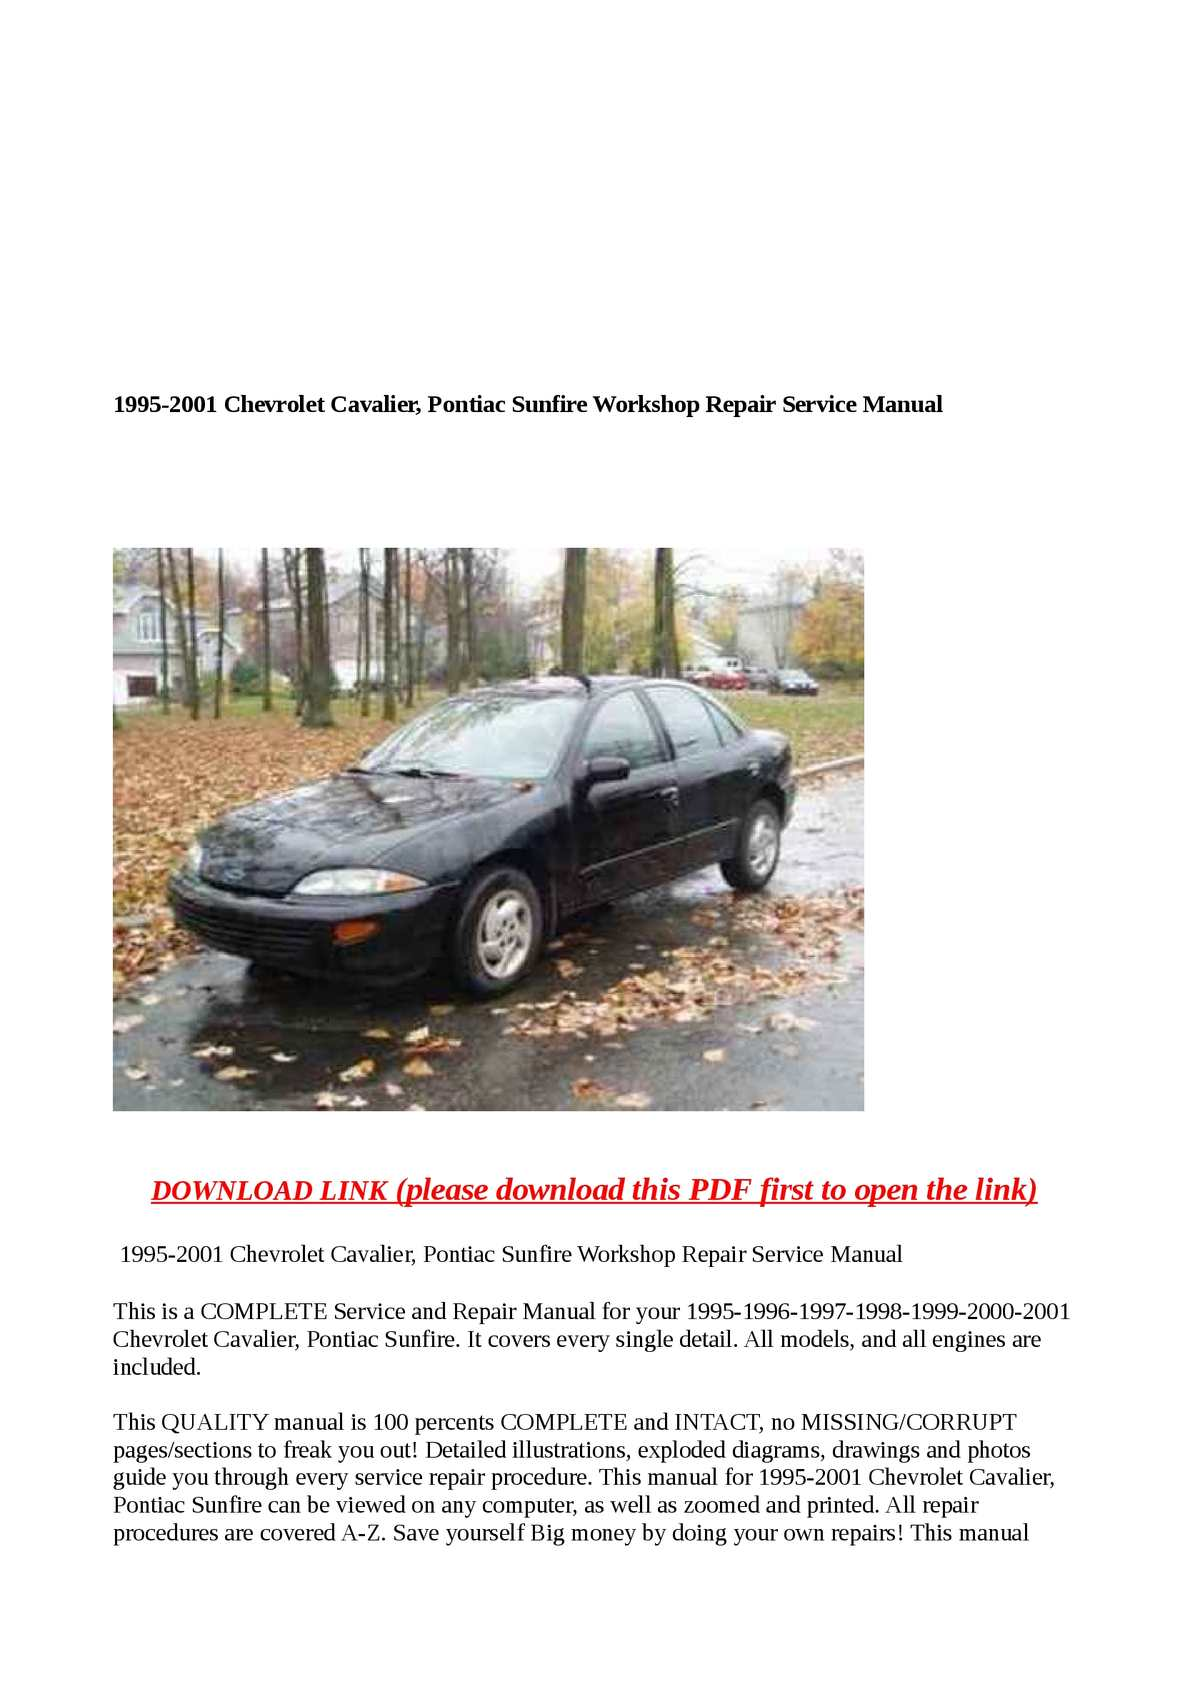 Chevy Cavalier service manual 1998 Movies list